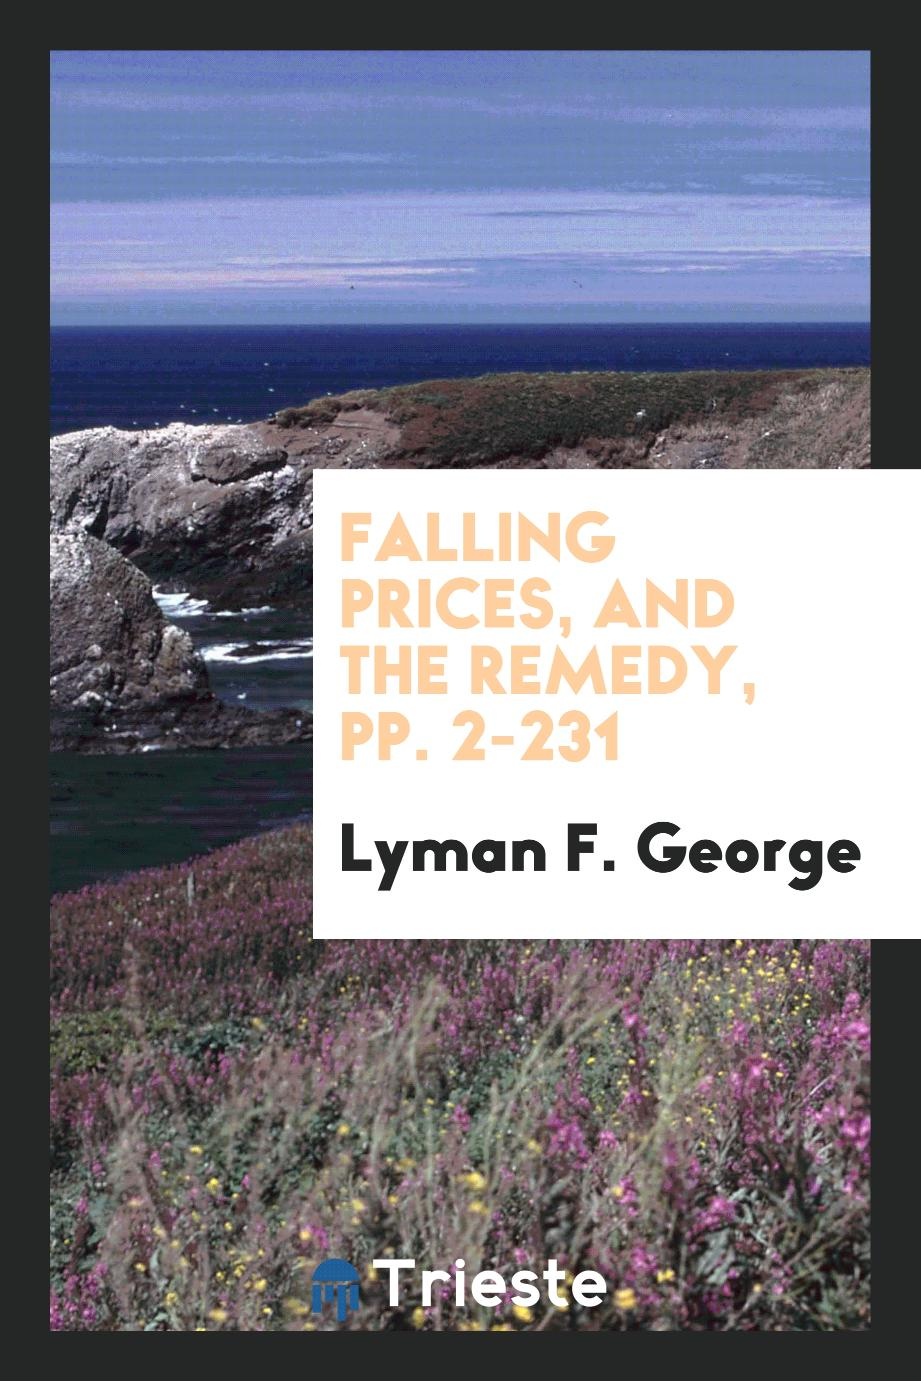 Falling Prices, and the Remedy, pp. 2-231